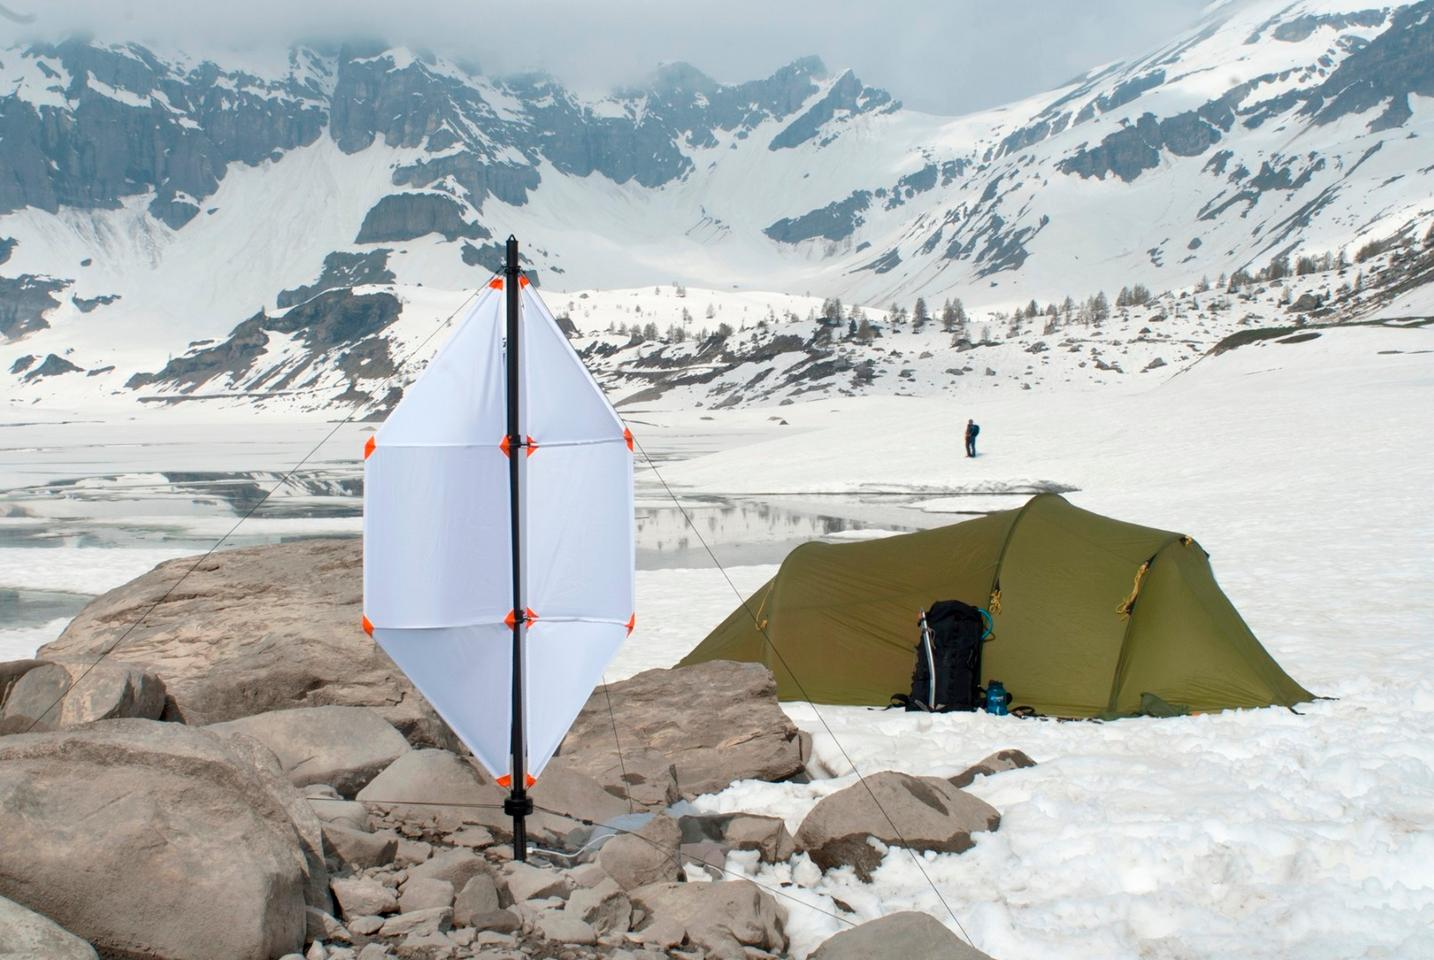 The Micro Wind Turbine is designed for ease-of-use portability